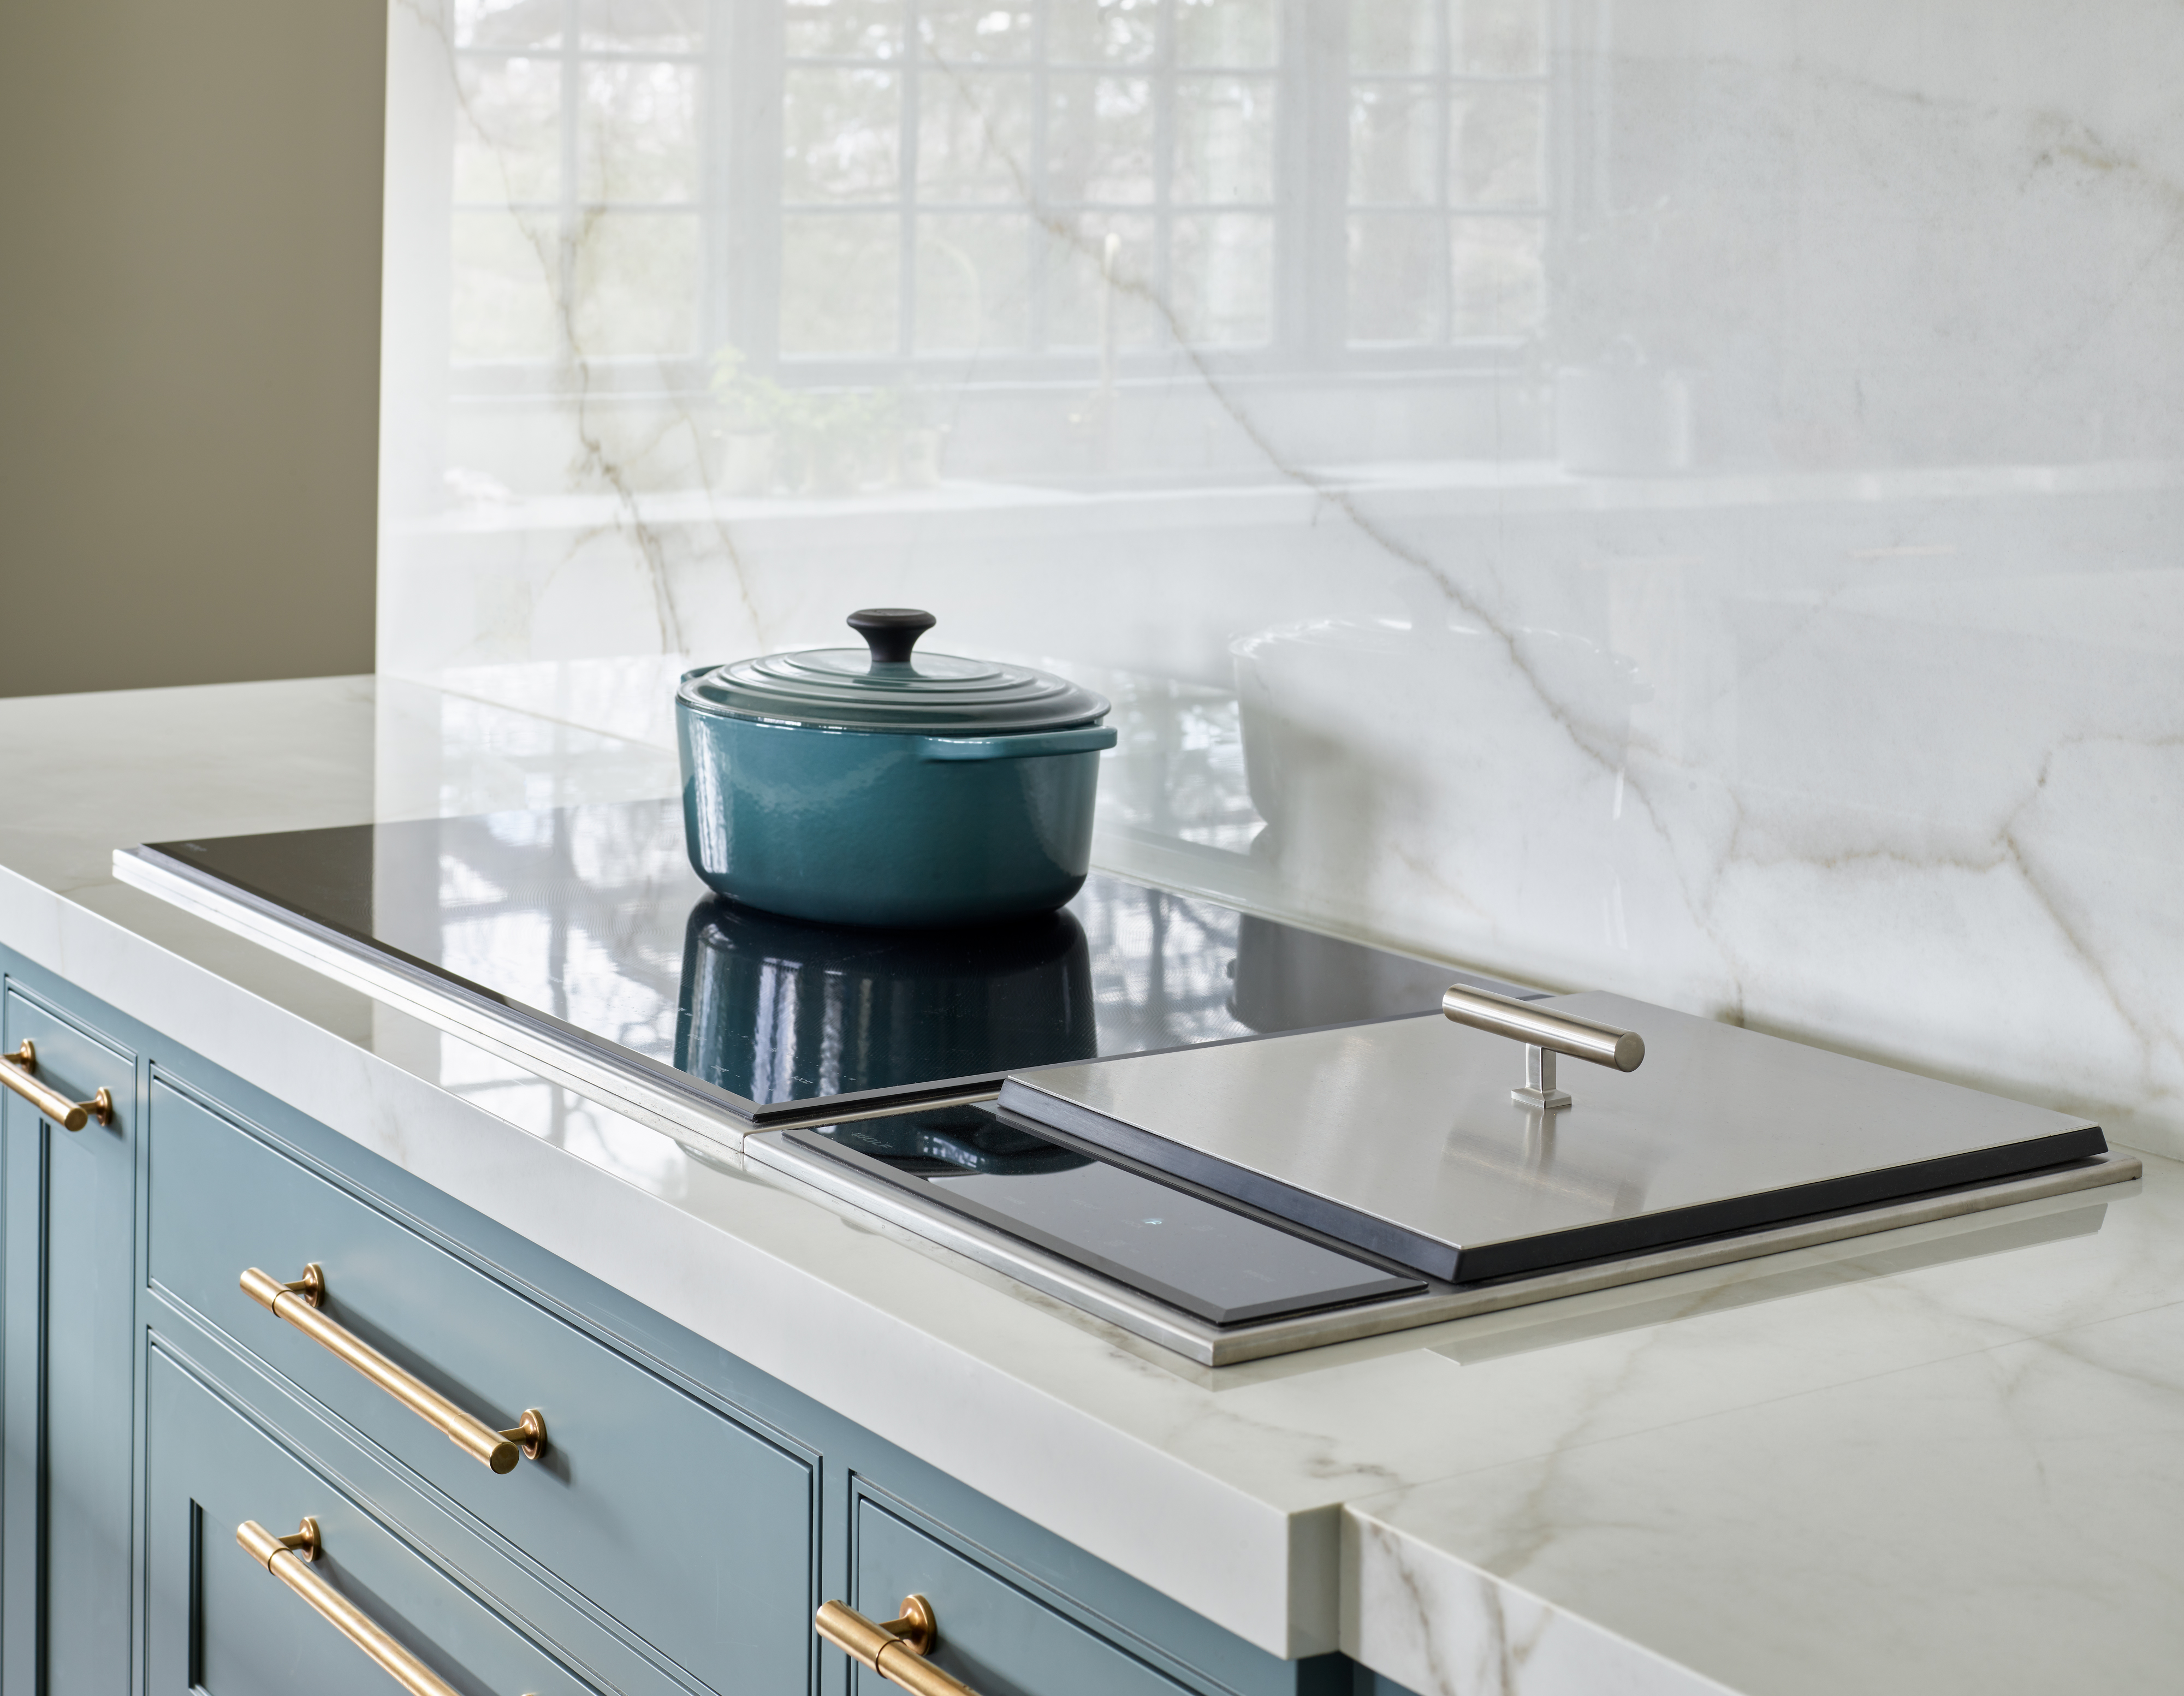 Induction Cooktop, Glass Stovetop